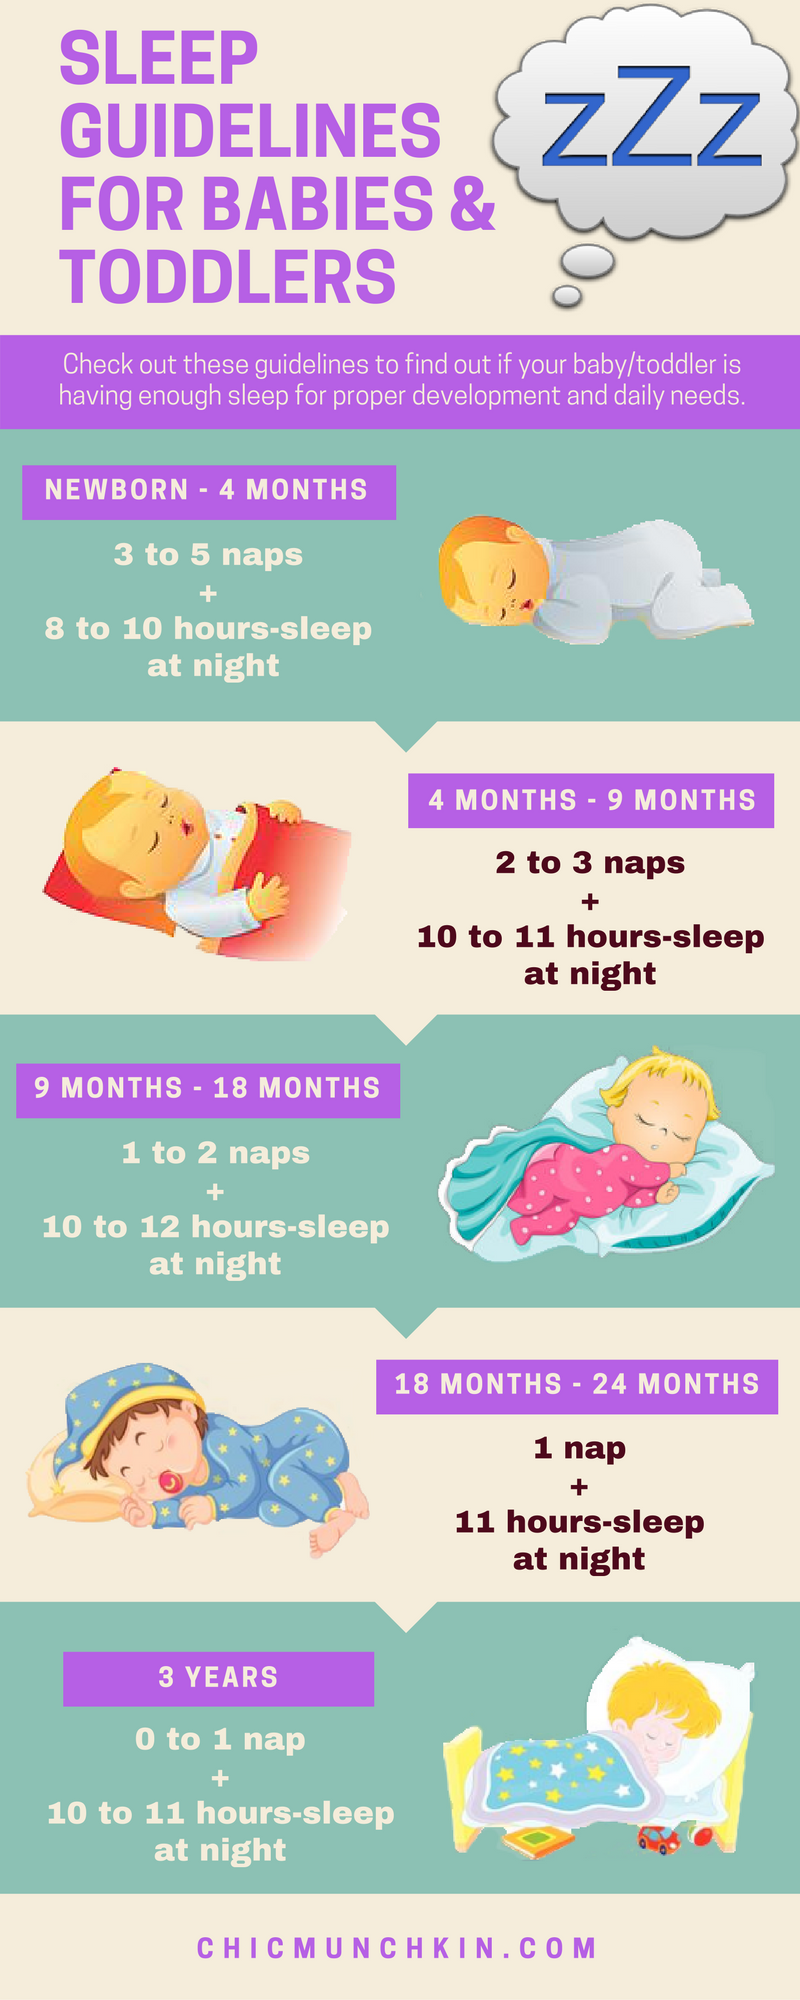 THE DEFINITIVE GUIDE TO BABY SLEEP INFOGRAPHIC - As important as feeding, sleeping can hugely impact your baby's life and development. Find out if your baby's sleeping habits are normal and sufficient in our infographic.